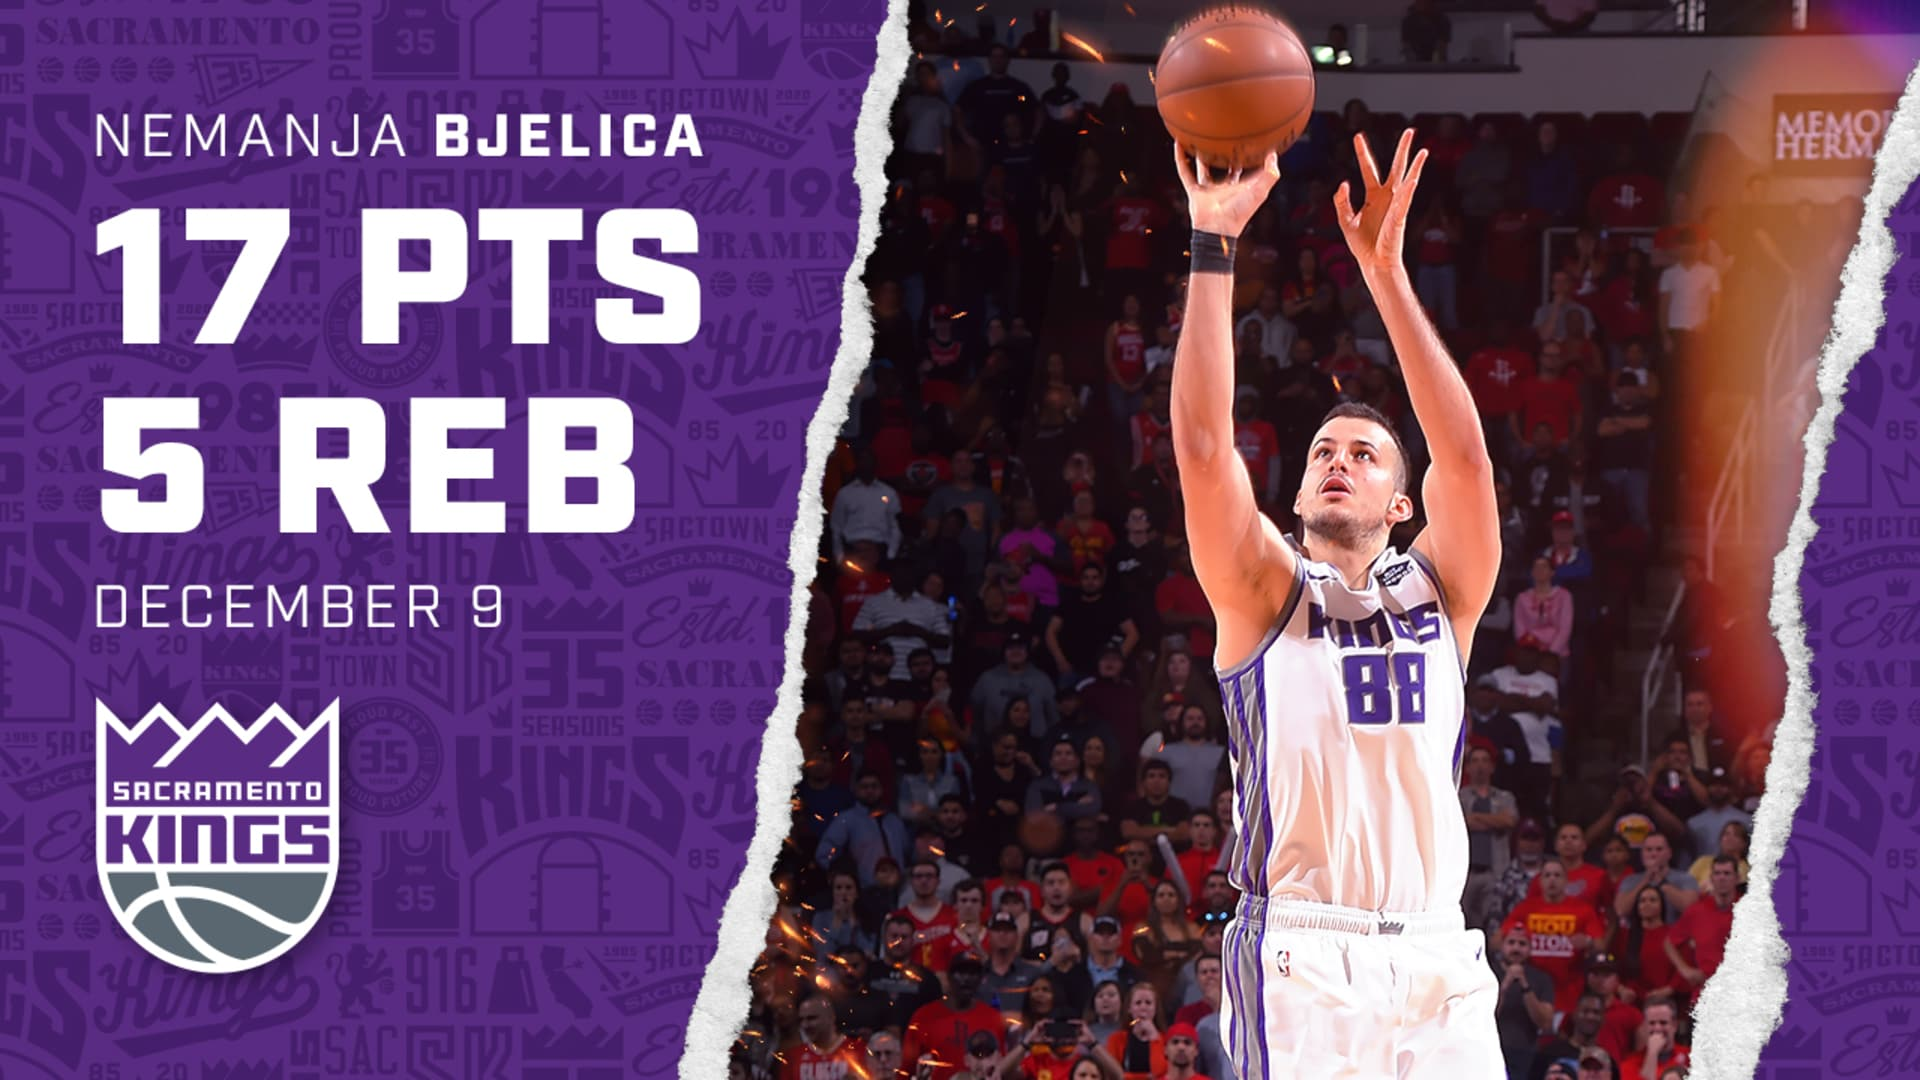 Nemanja Shoots Game-Winning 3, Seals Another Exciting Win | Kings vs Rockets